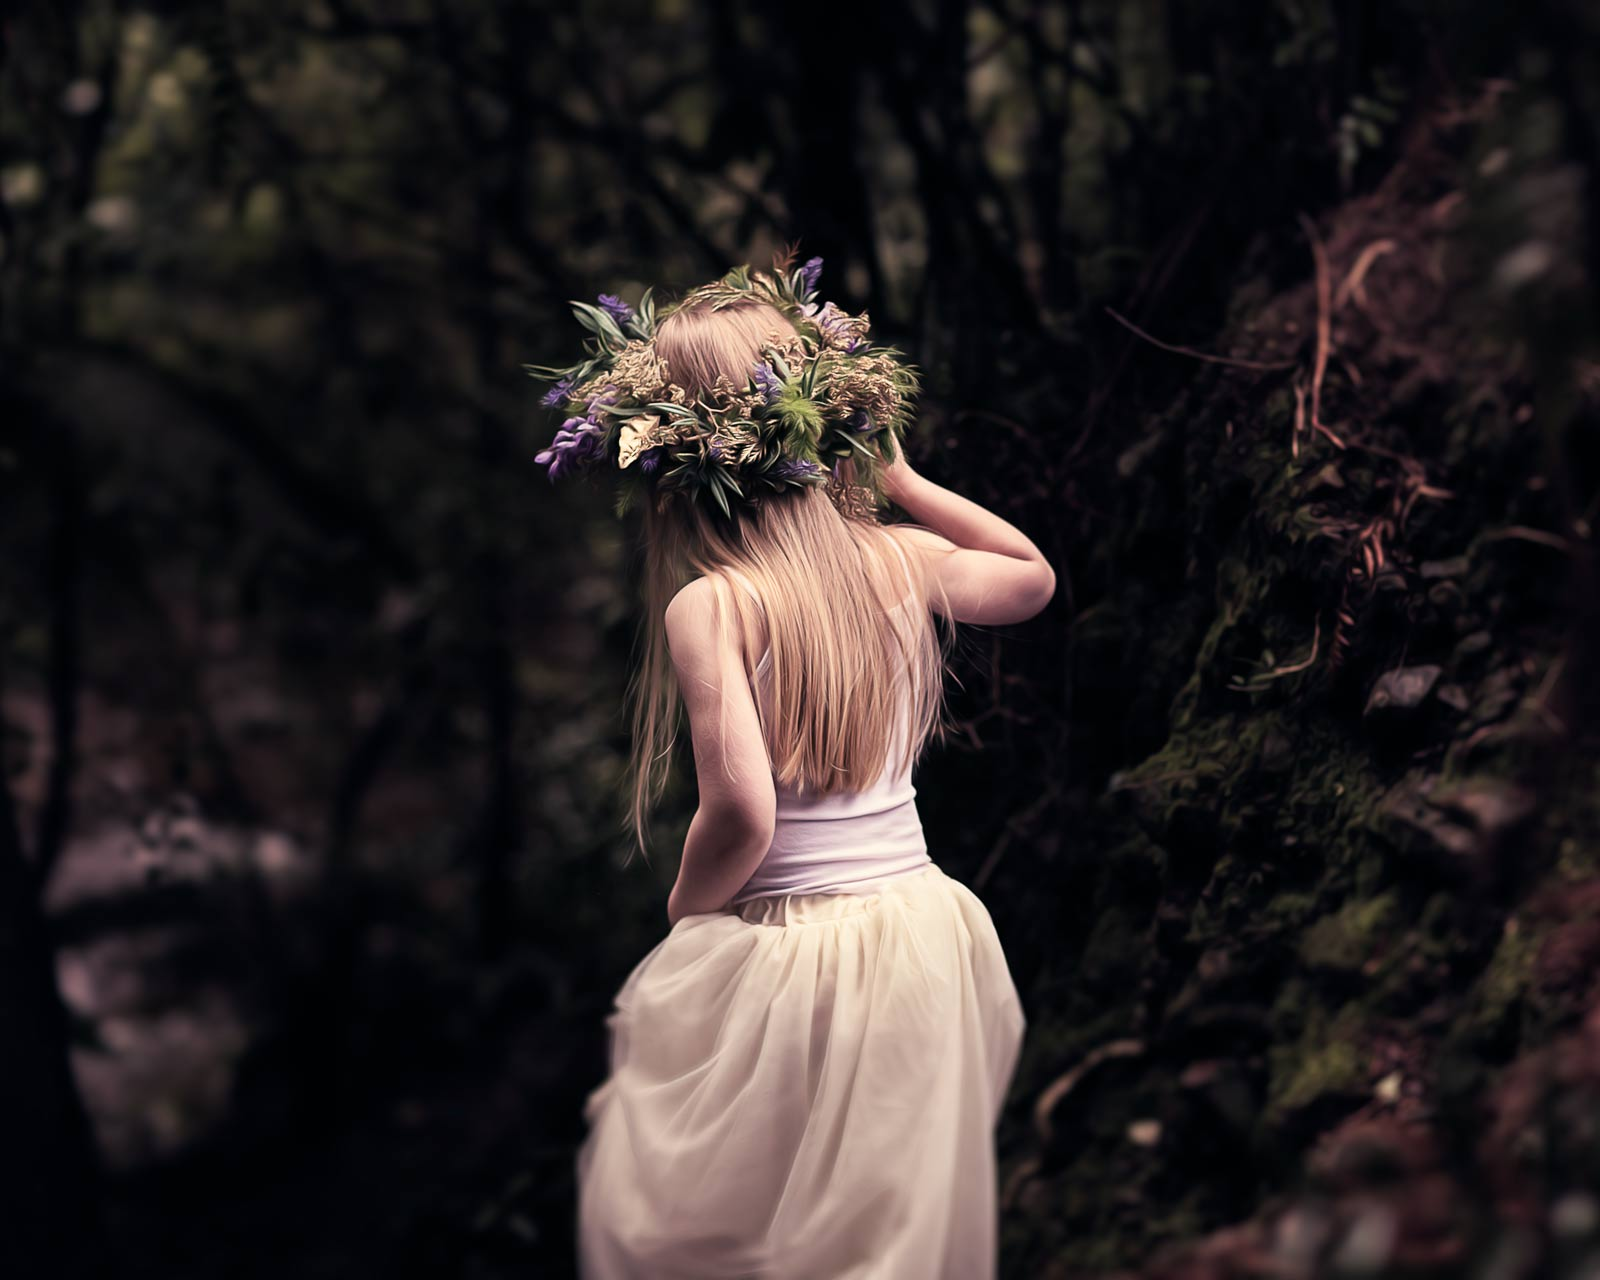 blond girl, white dress, flower crown, in a forrest, digital oil painting